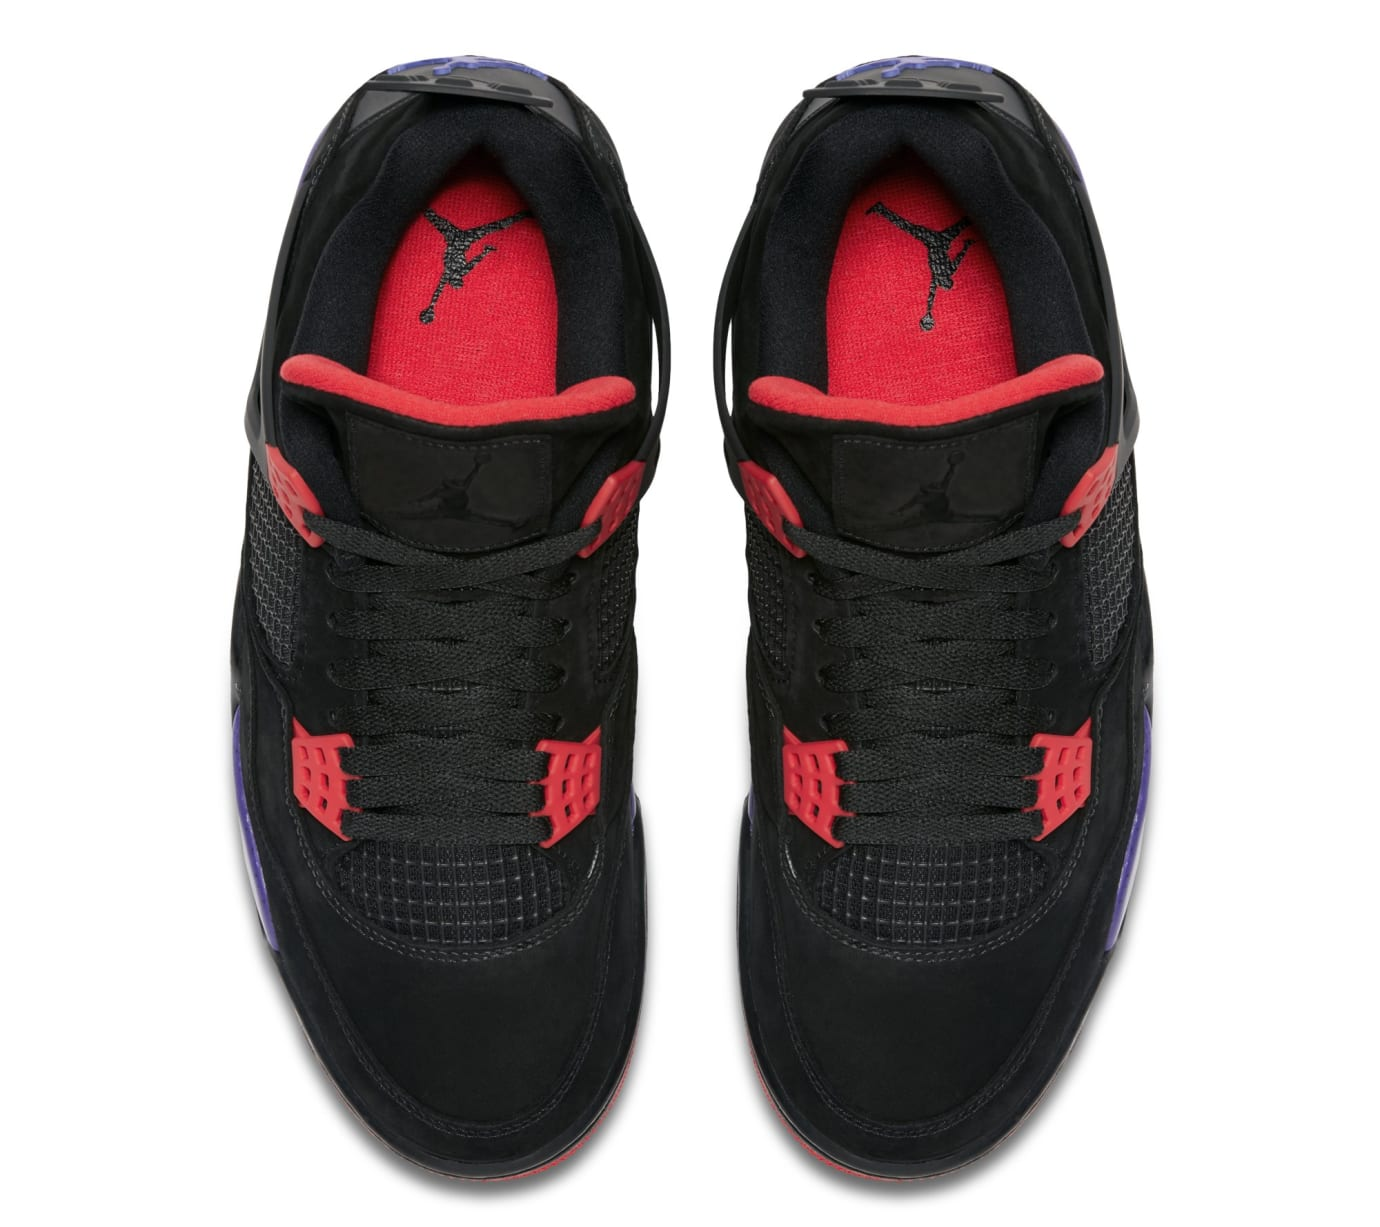 super popular 47a95 23323 Image via Nike Air Jordan 4  Raptors  AQ3816-065 (Top)